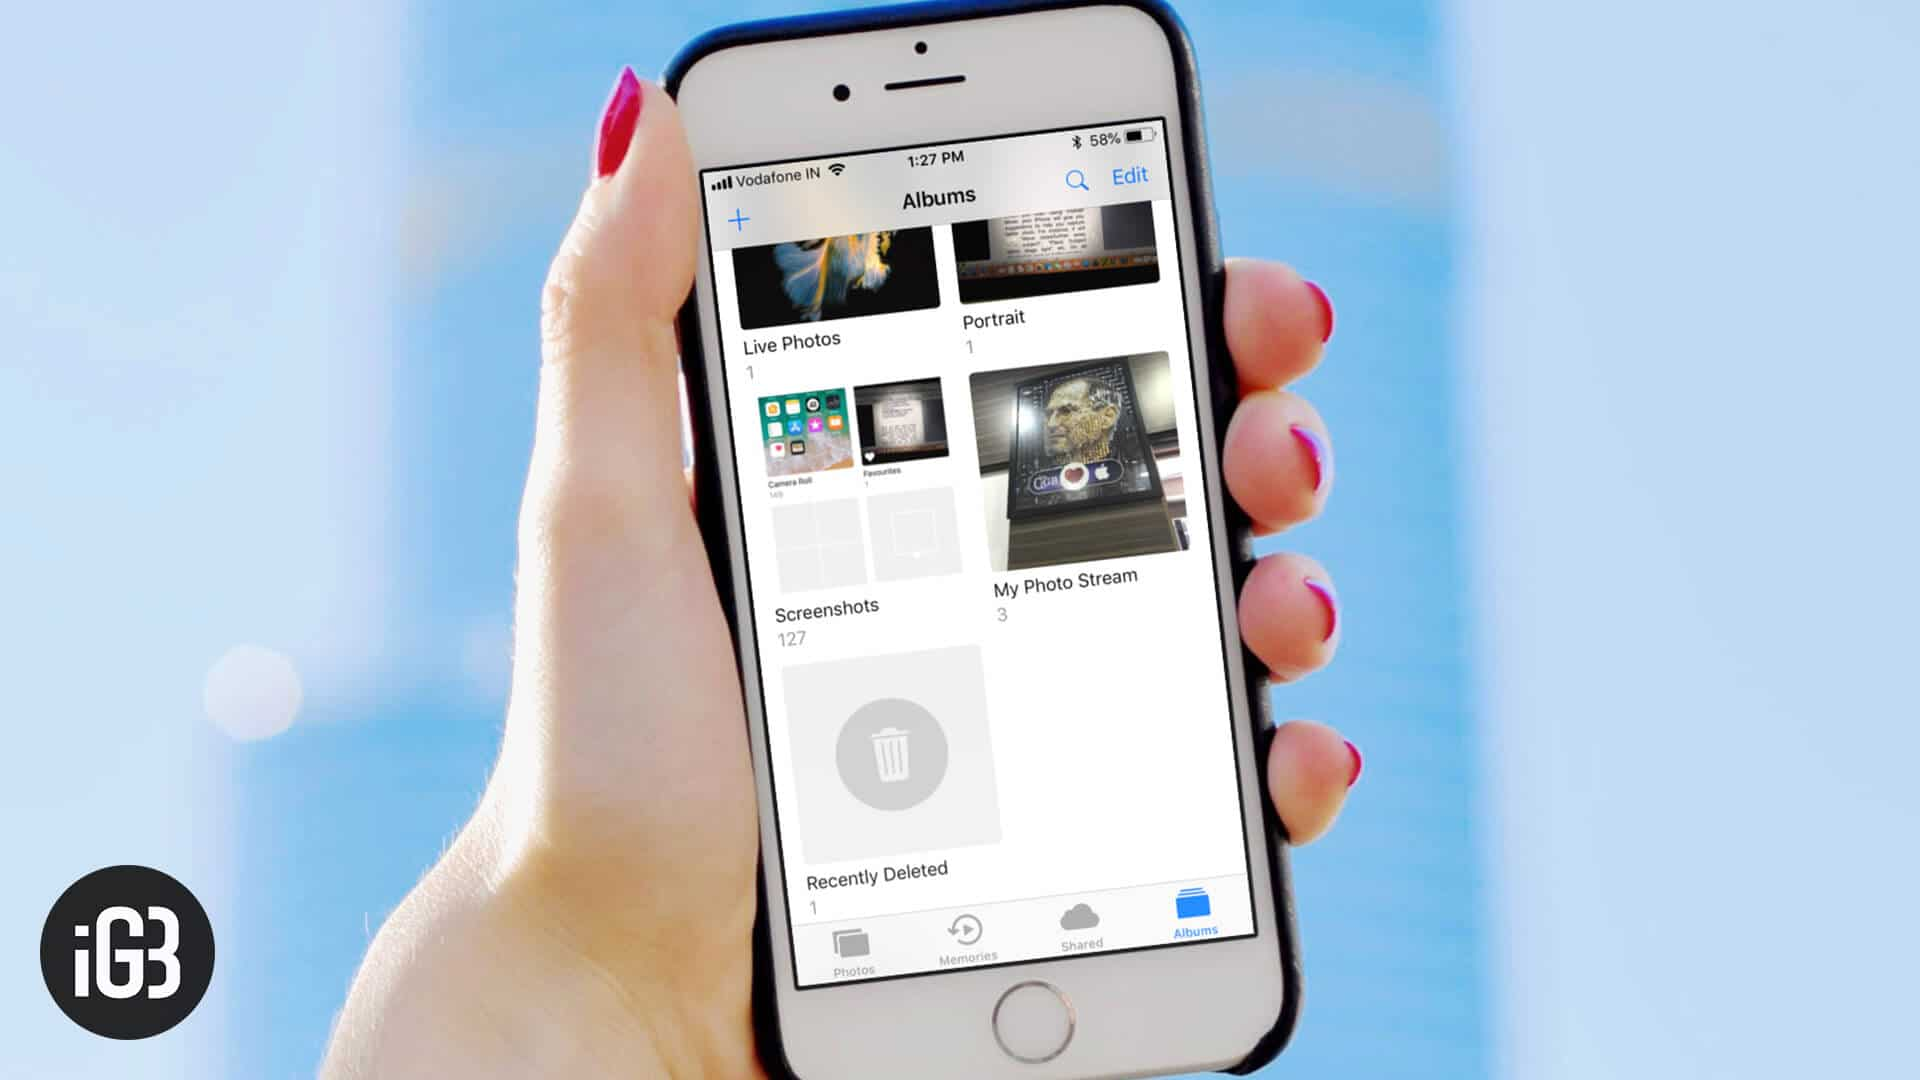 How to Disable My Photo Stream on iPhone, Mac and Apple TV